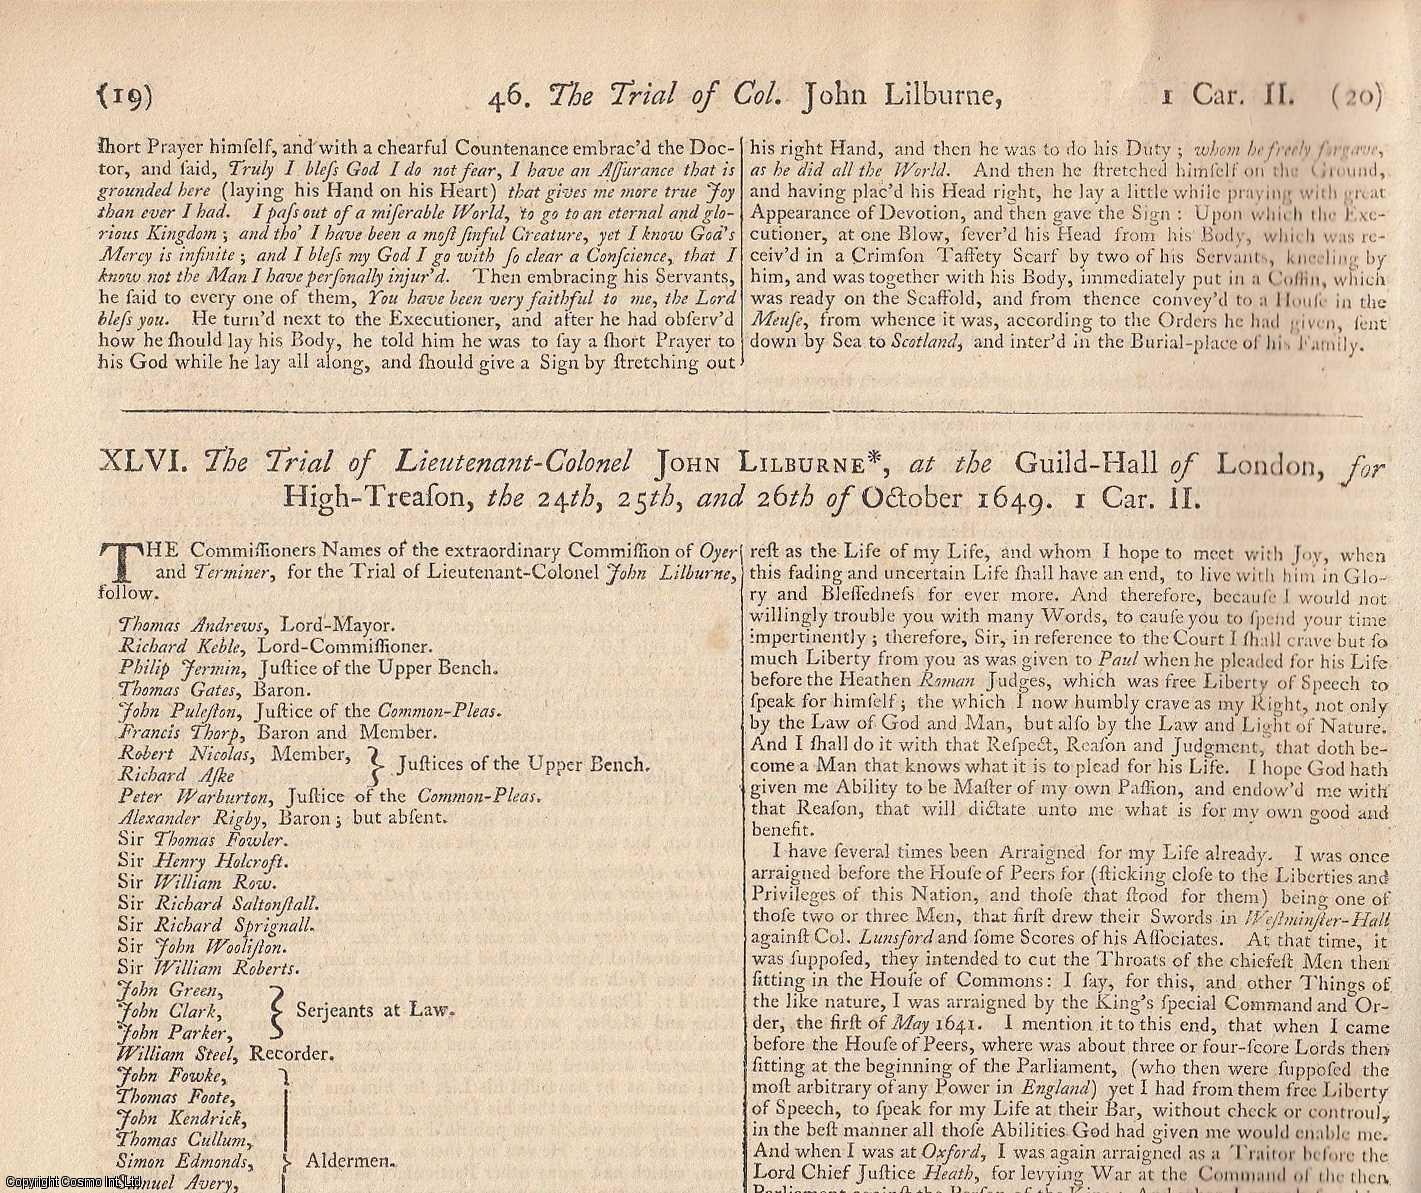 LEVELLERS & FREEBORN RIGHTS. The Trial of Lieutenant-Colonel John Lilburne, at the Guild Hall of London, for High Treason, the 24th, 25th, and 26th of October 1649. Along with The Examination of the Jury who try'd Lietenant-Colonel John Lilburne., [Trial].